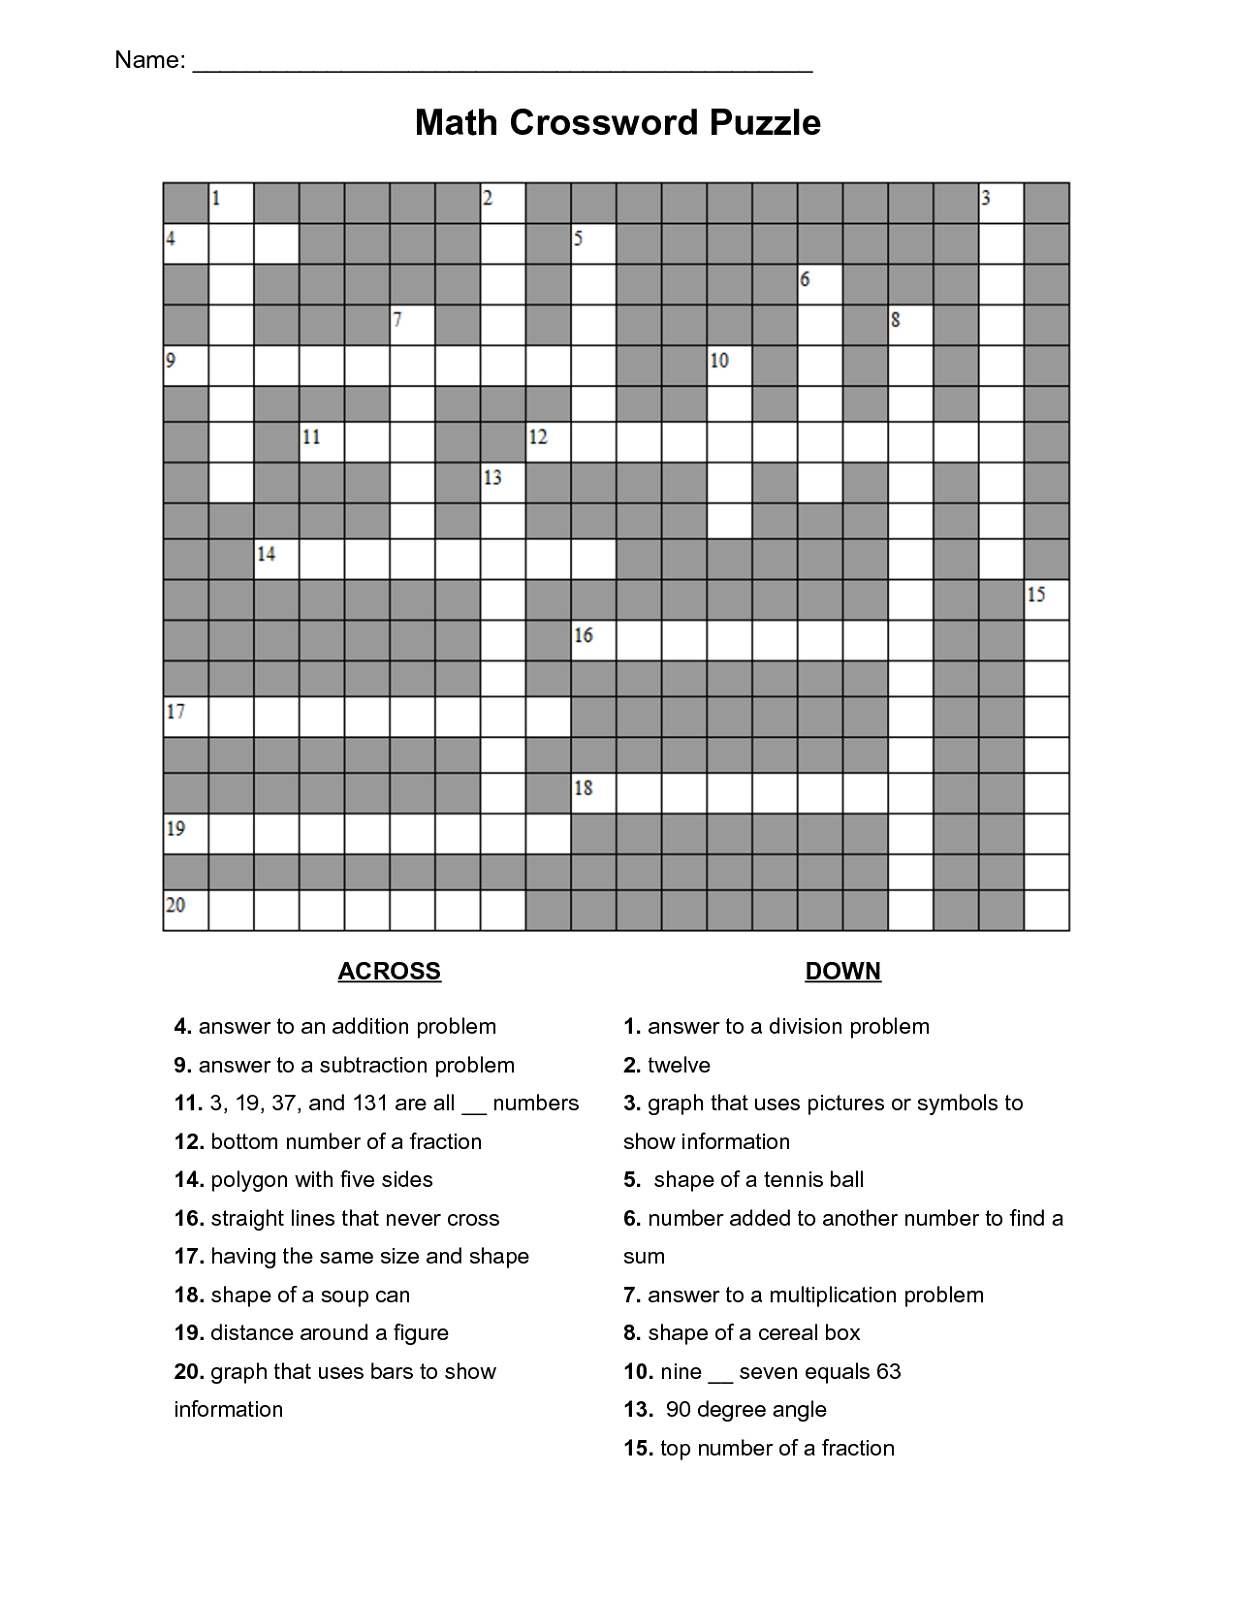 Math Puzzles Printable For Learning | Activity Shelter - Printable Crossword Puzzle Grade 3